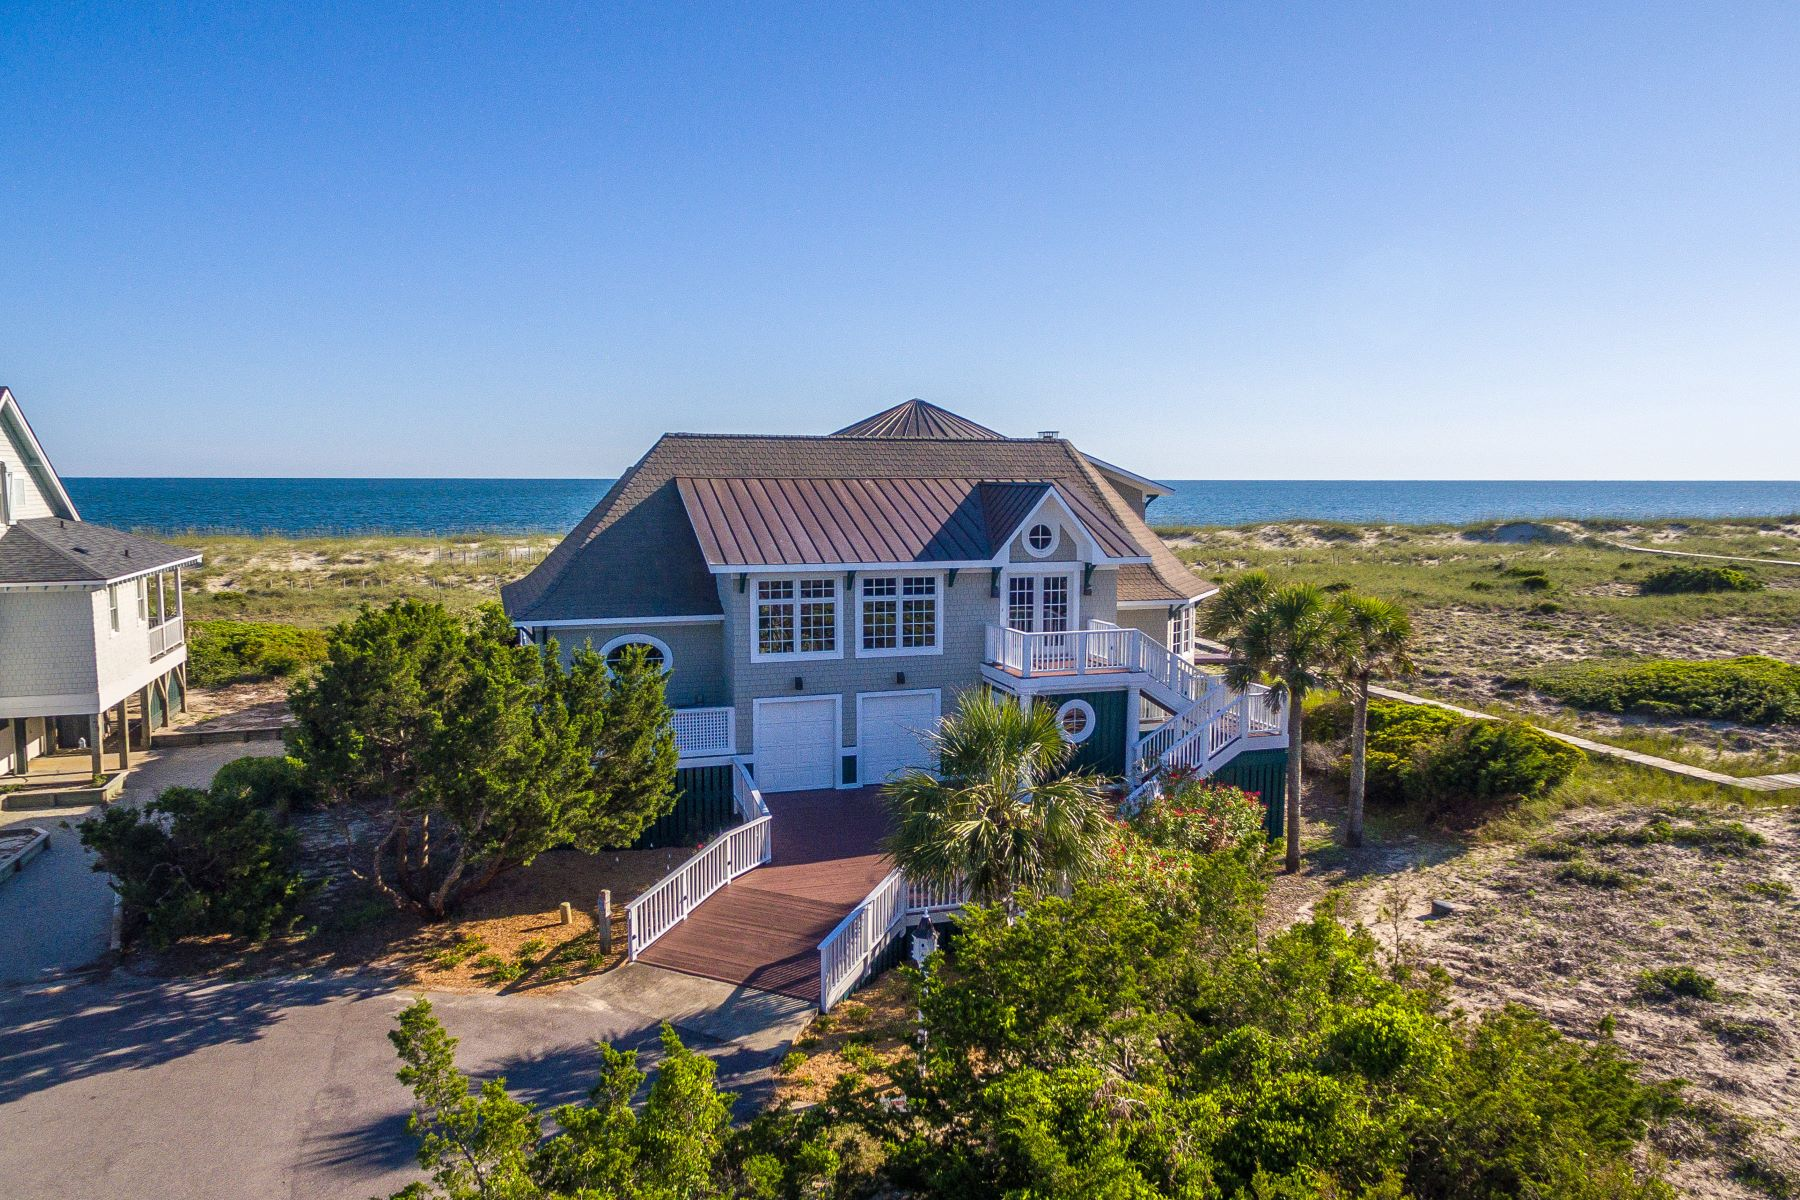 Single Family Homes for Sale at Elegant Ocean Front Home 6 Inverness Court Bald Head Island, North Carolina 28461 United States